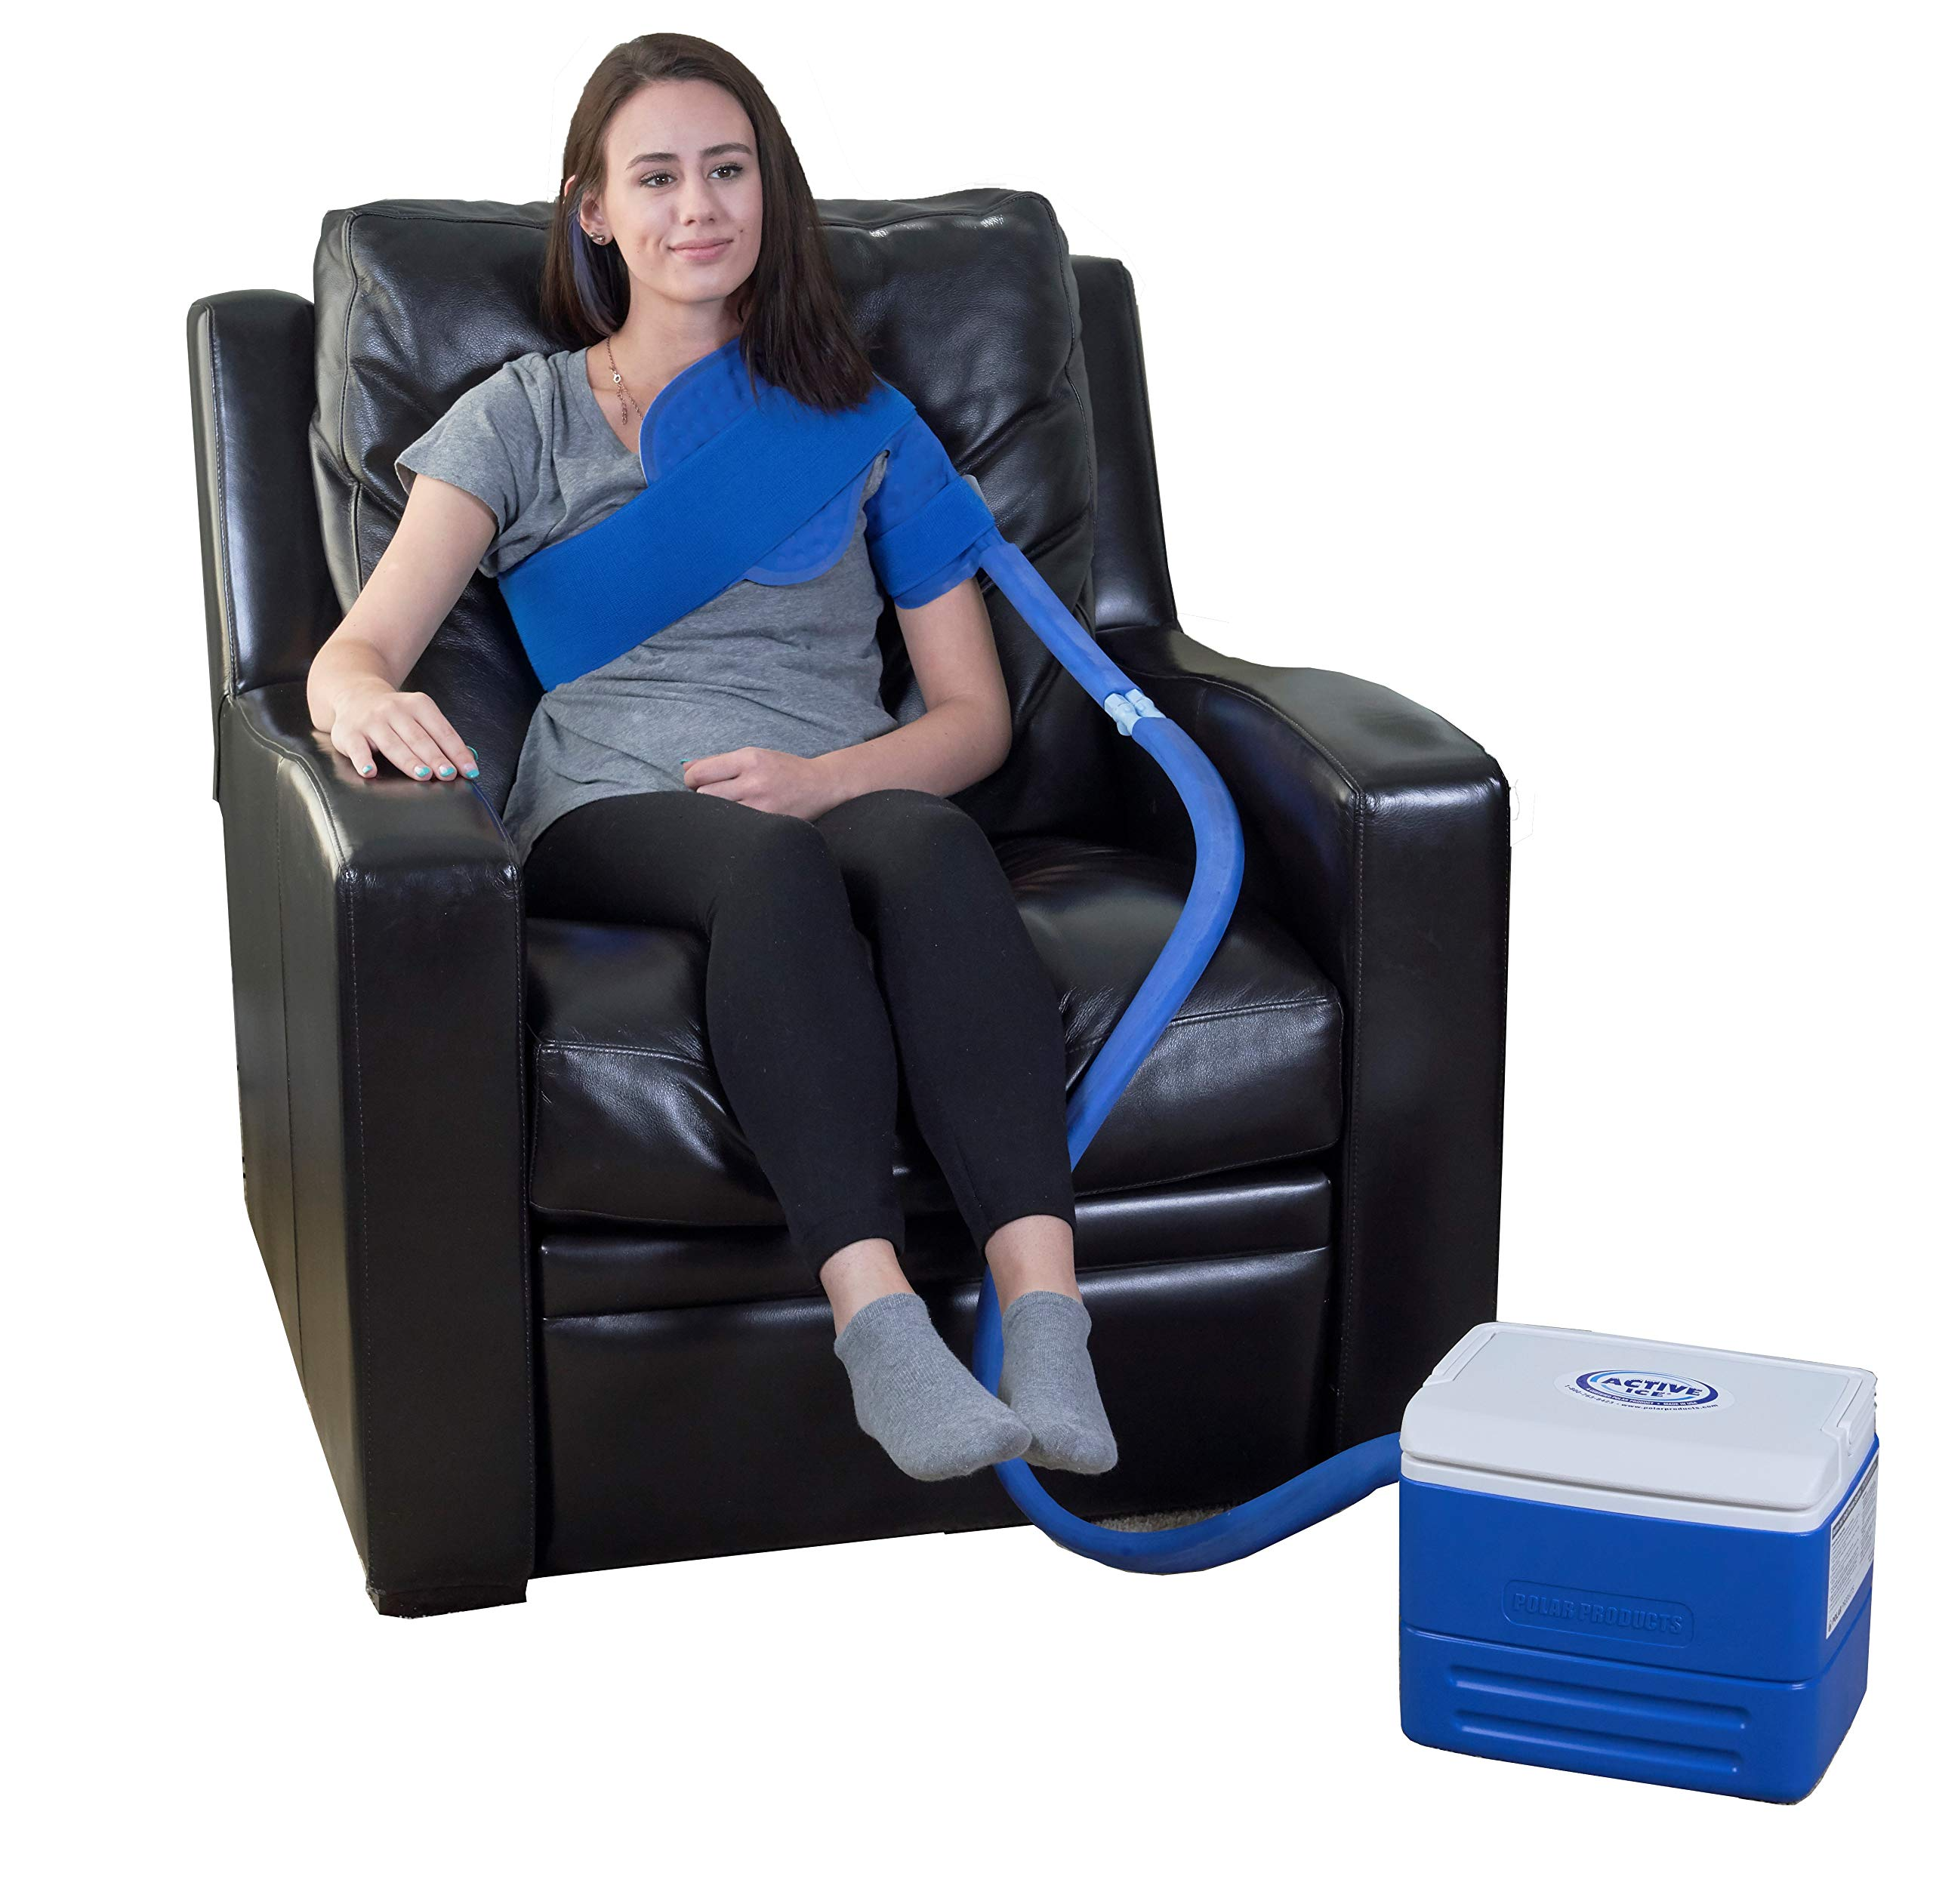 Polar Products Active Ice® 3.0 Shoulder Cold Therapy System with Digital Timer Includes Shoulder Bladder, 9 Quart Cooler by Polar Products Inc.